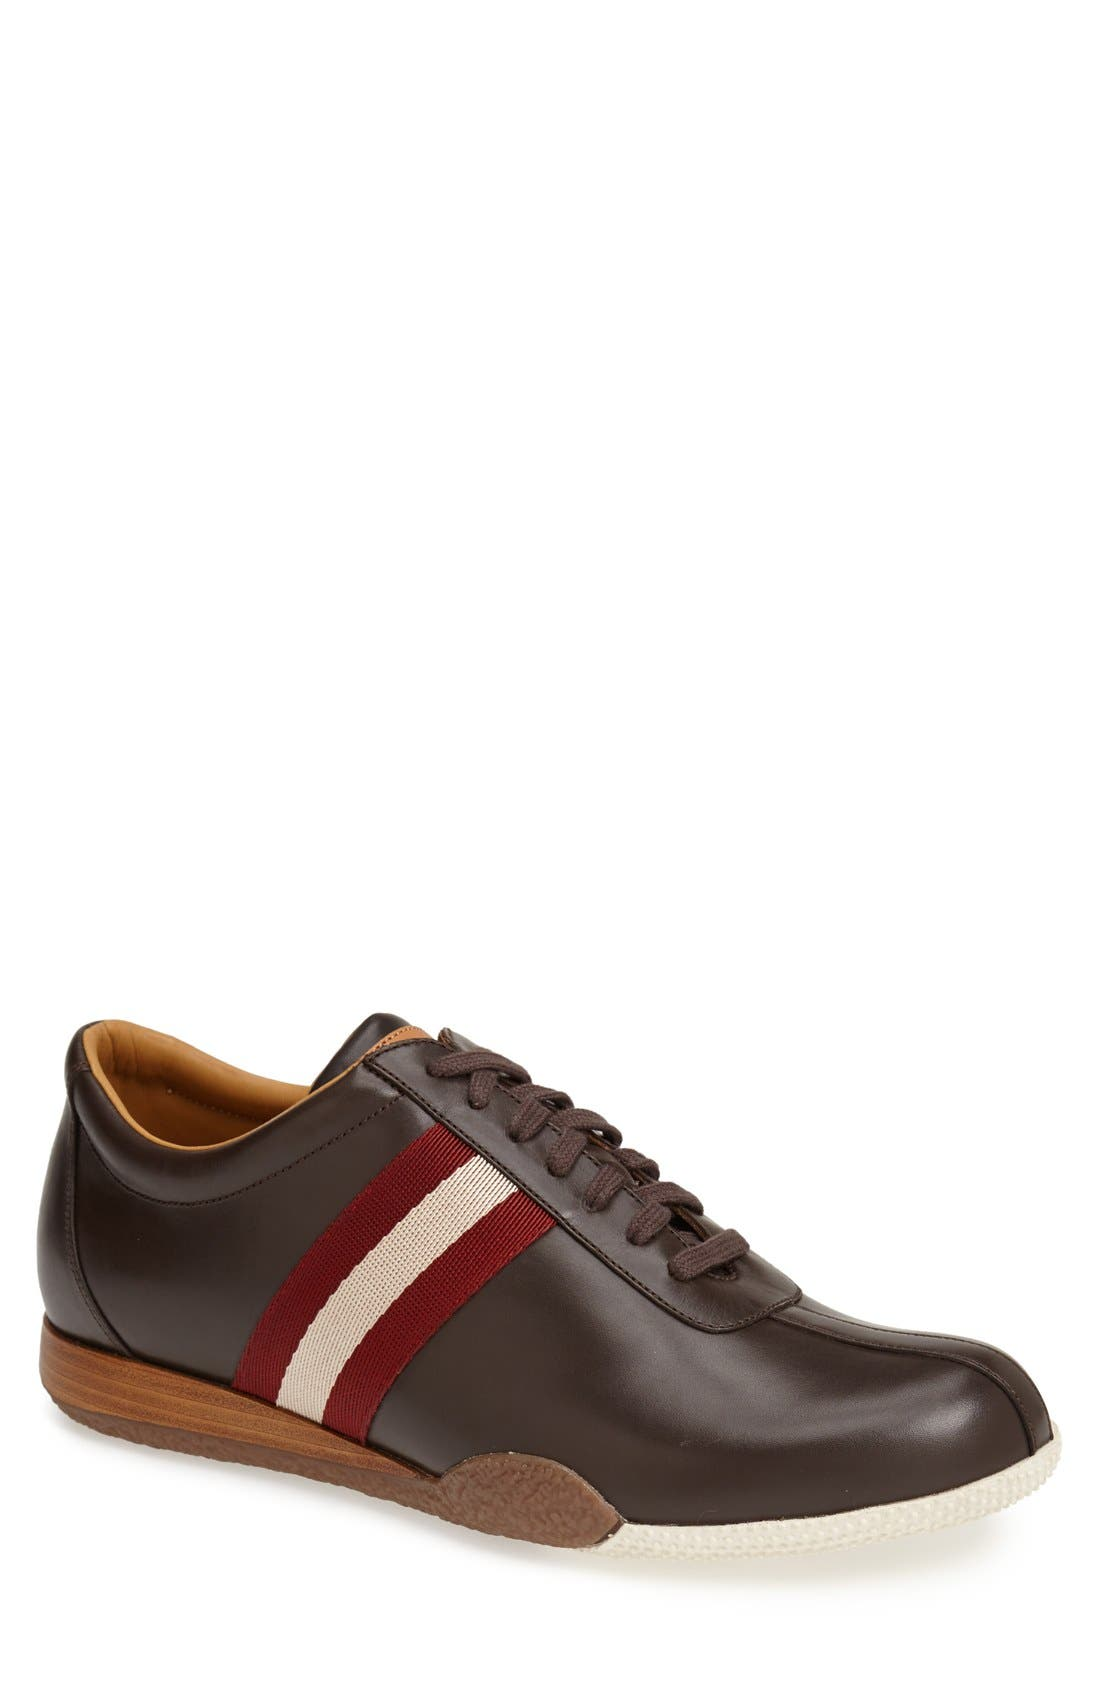 Alternate Image 1 Selected - Bally 'Freenew' Leather Sneaker (Online Only)